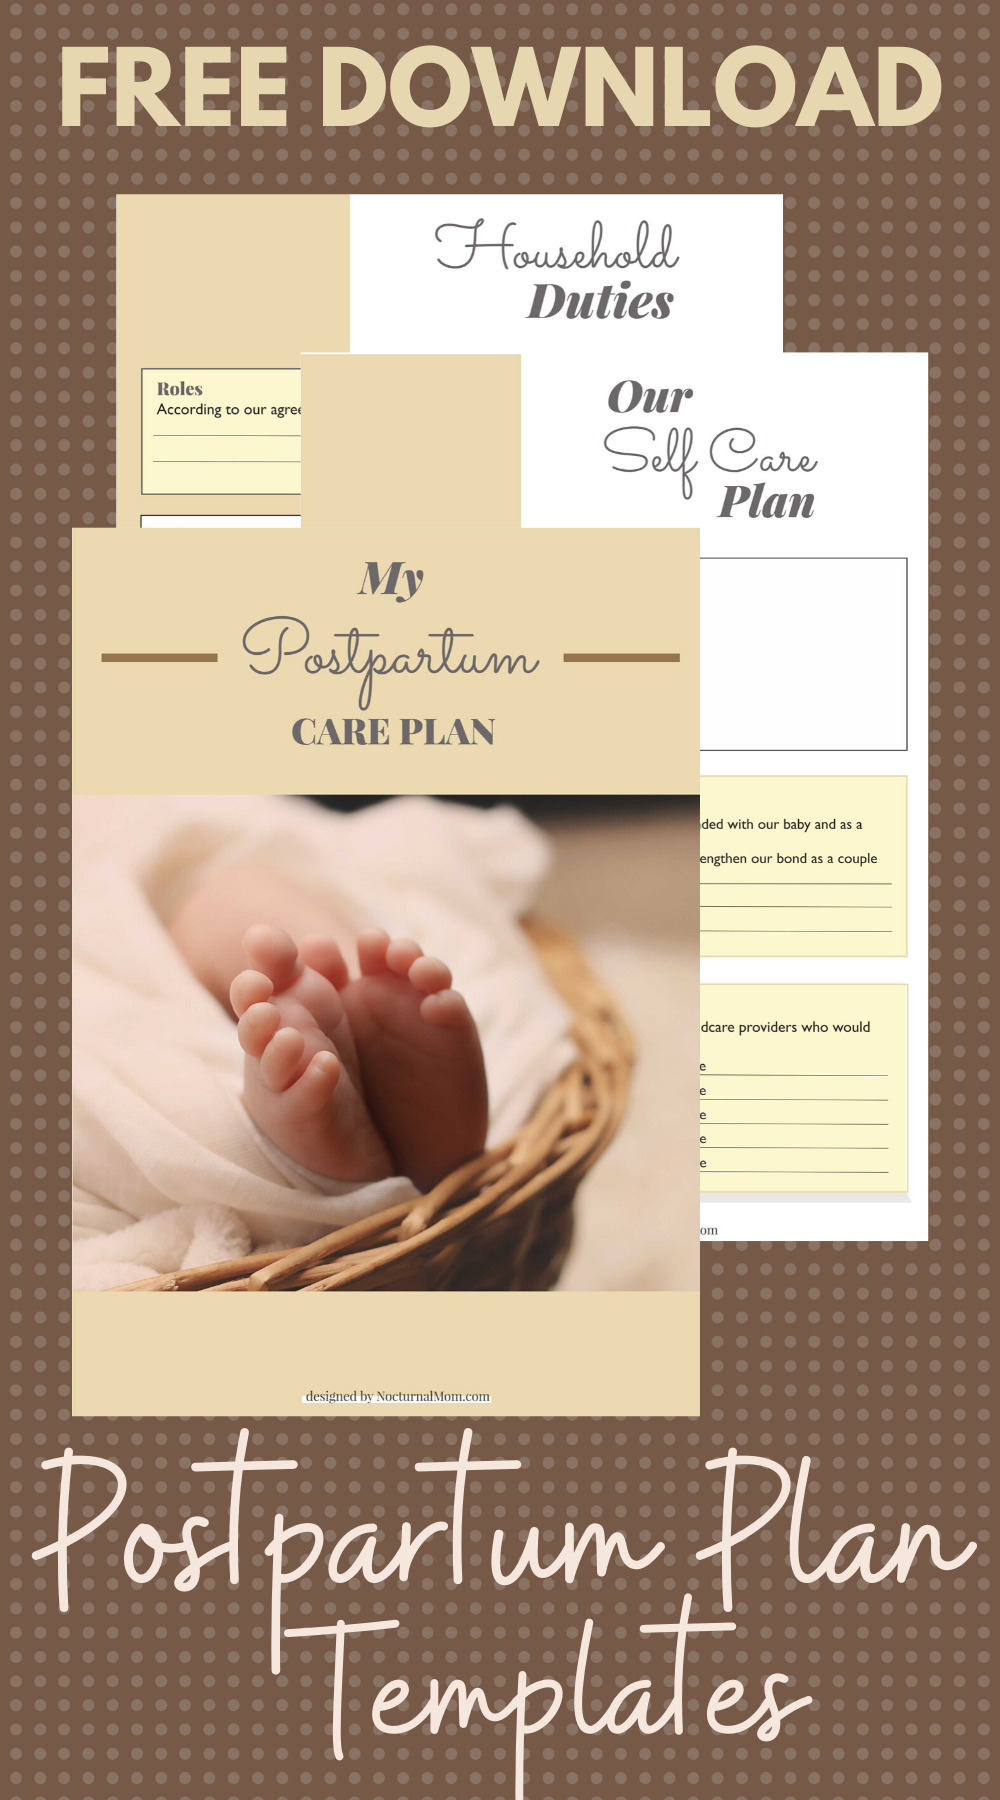 Free Download Postpartum Plan Templates How To Plan Postpartum Birth Recovery